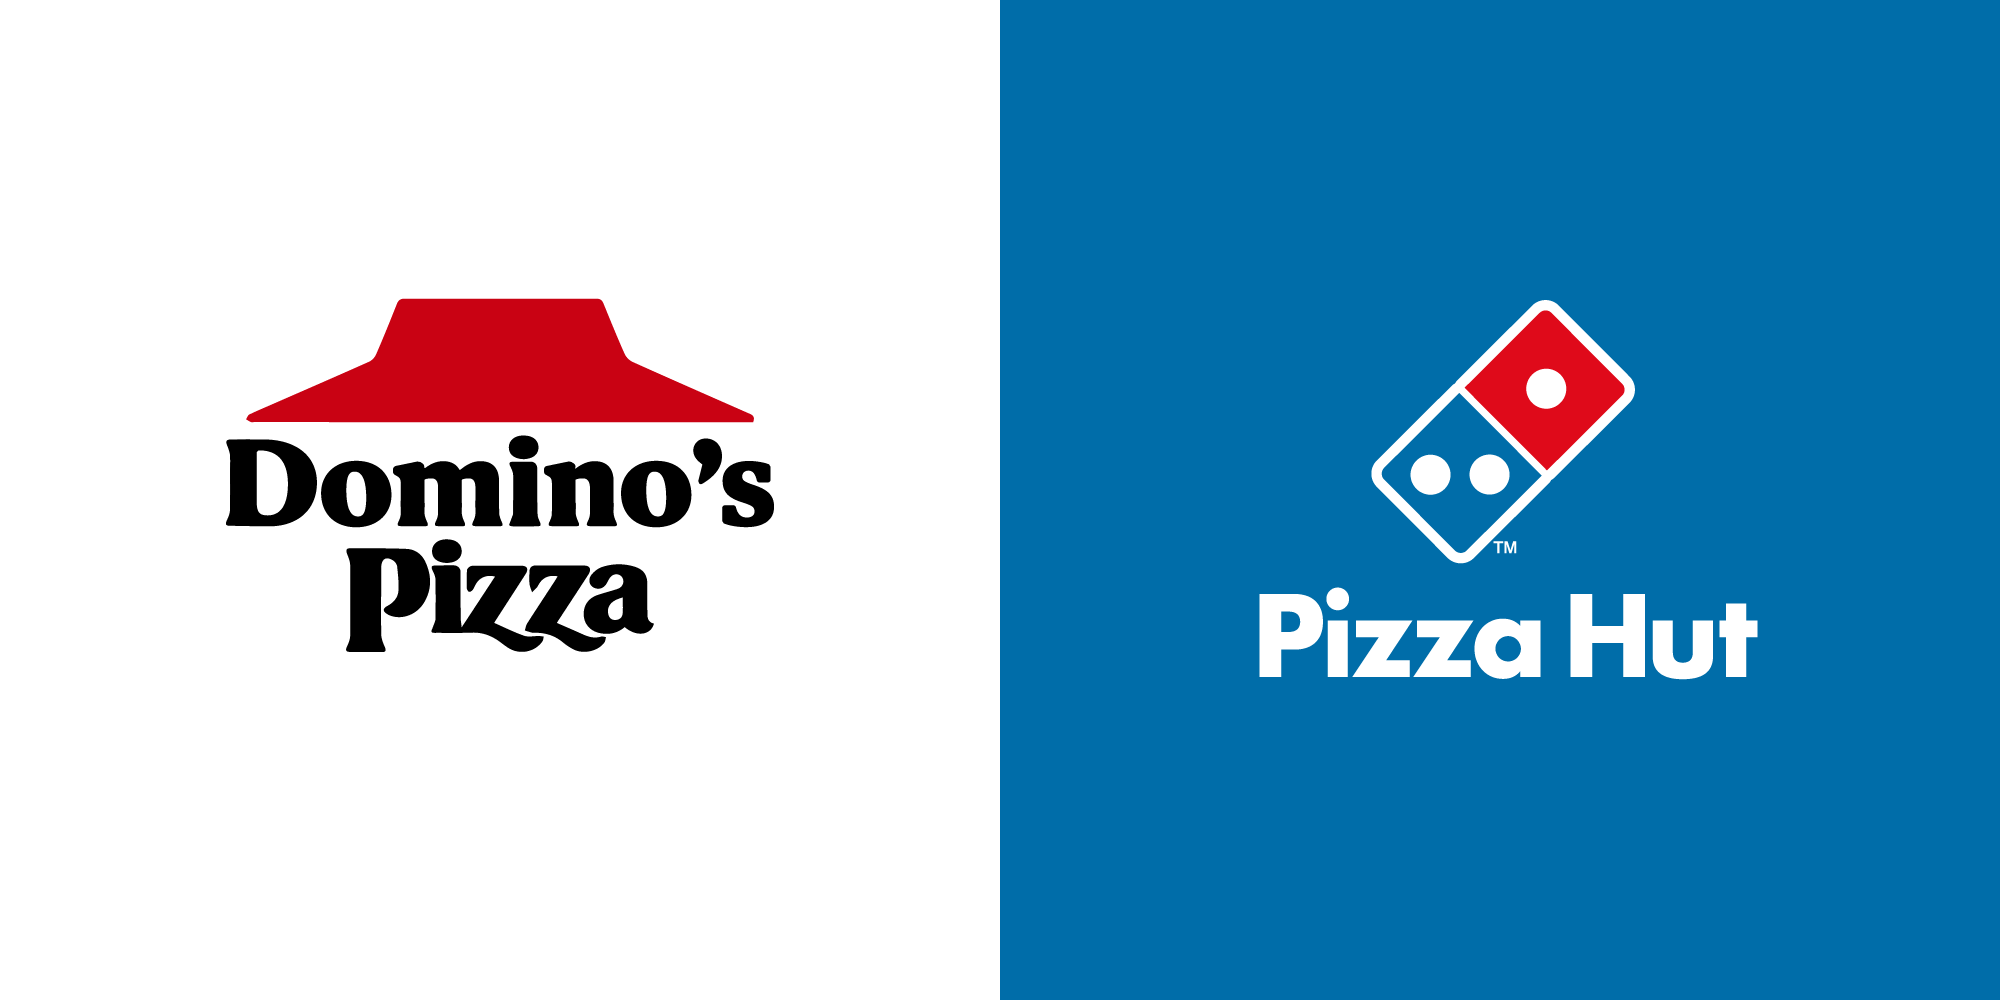 Pizza Hut Vs Domino's logo - CDA